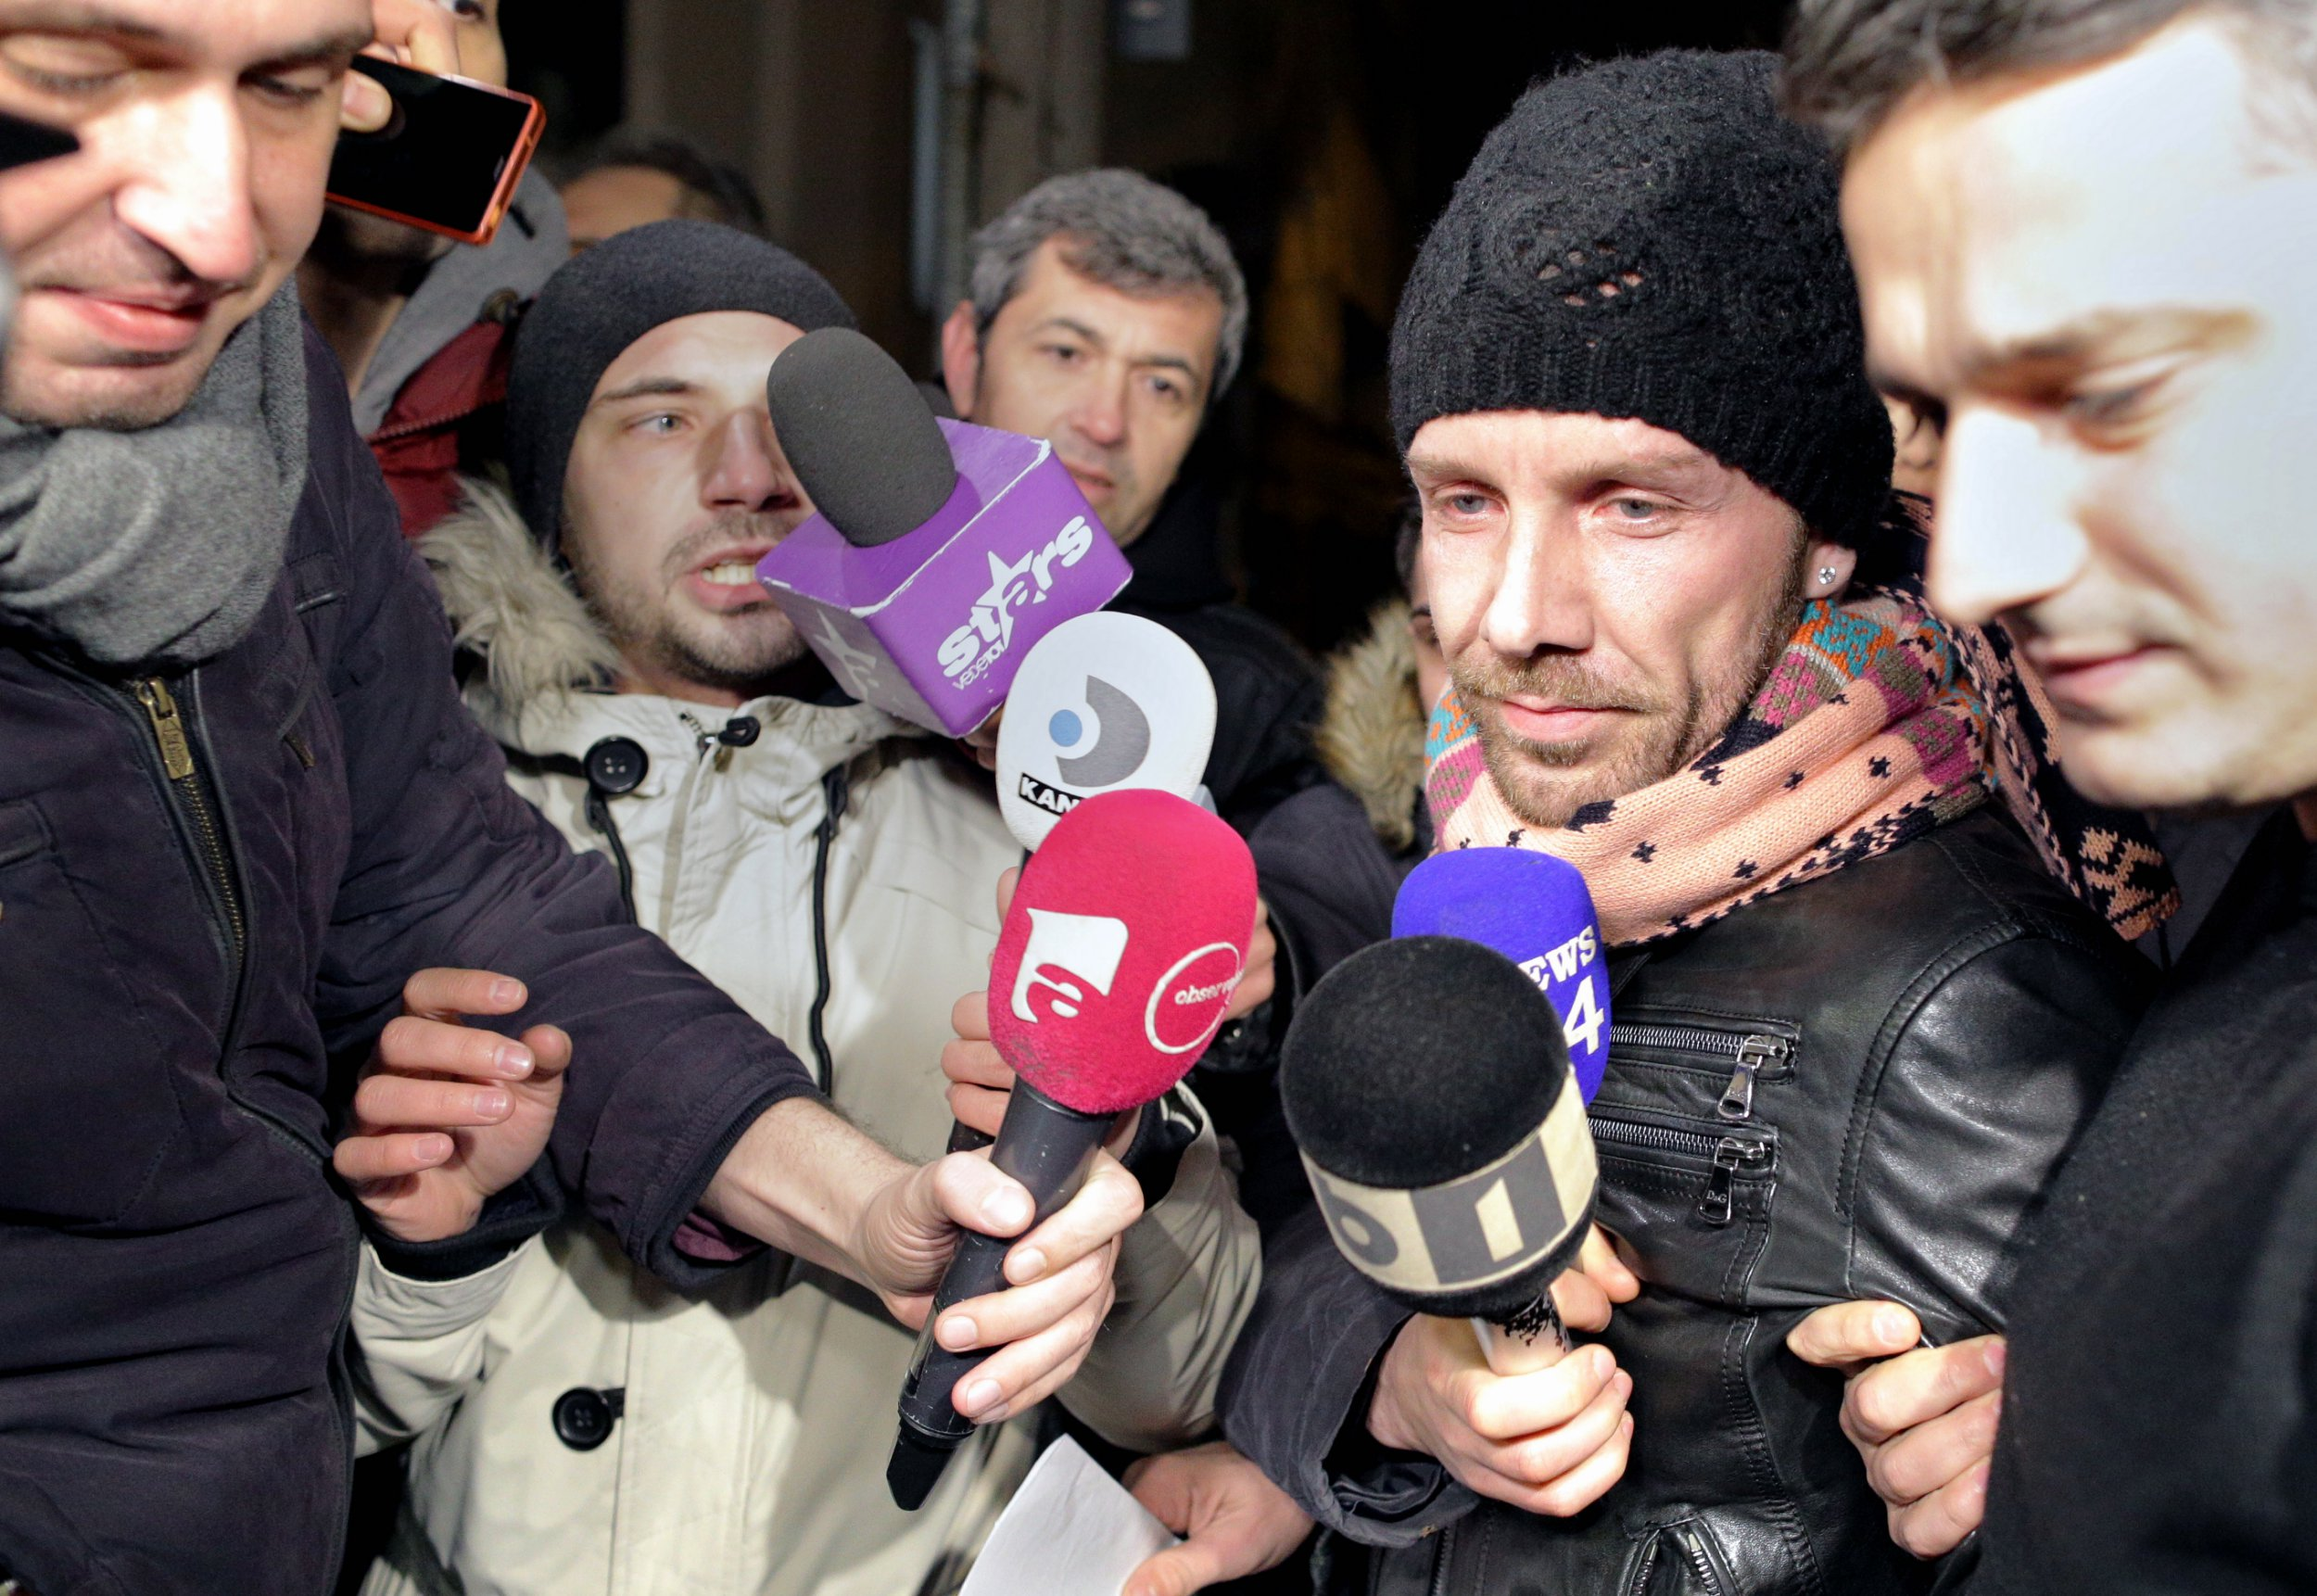 epa07348650 Italian man Matteo Politi (2-nd R), 38, who allegedly posed as a plastic surgeon, is surrounded by TV journalists while being escorted by a Romanian policemen (R) towards the Police Station No. 4 after being arrested for further investigations, in Bucharest, Romania, 06 February 2019. Politi, who posed as a famous plastic surgeon and performed surgeries on patients at few private clinics in Romania's capital despite having no medical training and legal license, was caught by border police while trying to leave Romania by train. 'Libertatea' newspaper reported that a nurse became suspicious as the man do not use proper procedures for hand washing and glove wearing prior to surgery operations, and due to the longer time he needed to perform a breast implant. Italian media reported that Politi was convicted in 2011 for a similar fraud, receiving a 18 month sentence with suspension. There are no reports yet of patients suffering as a result of Politi surgeries. EPA/VLAD CHIREA